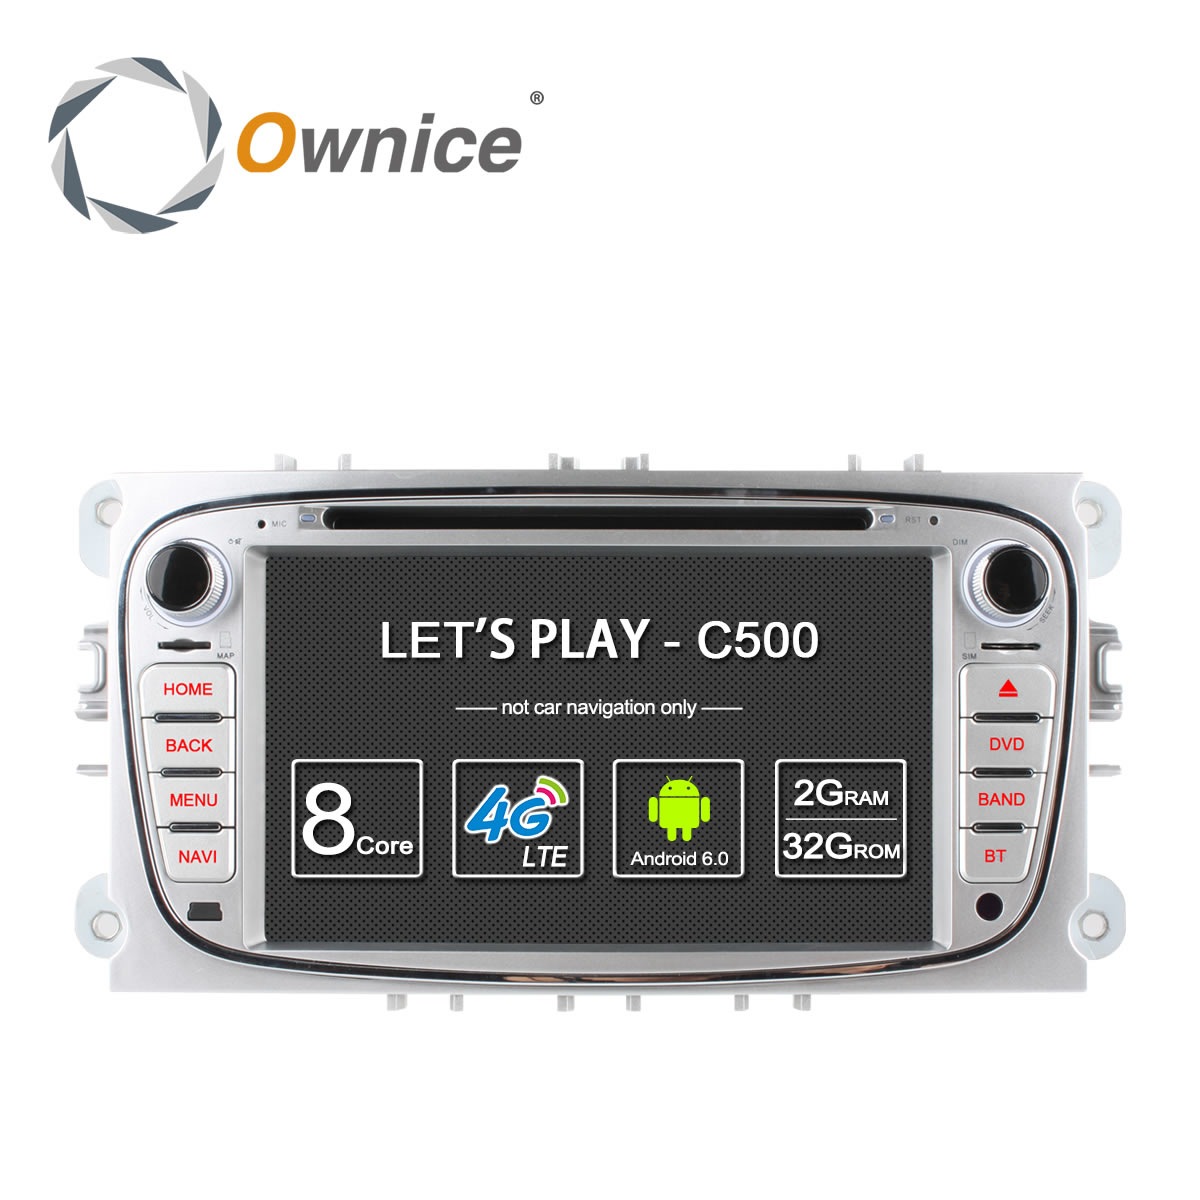 Ownice C500 8 4g LTE Android 6.0 Octa Núcleo S-MAX Conectar Carro DVD Player GPS Para FORD Mondeo FOCO 32 2 2008 2009 2010 2011g ROM